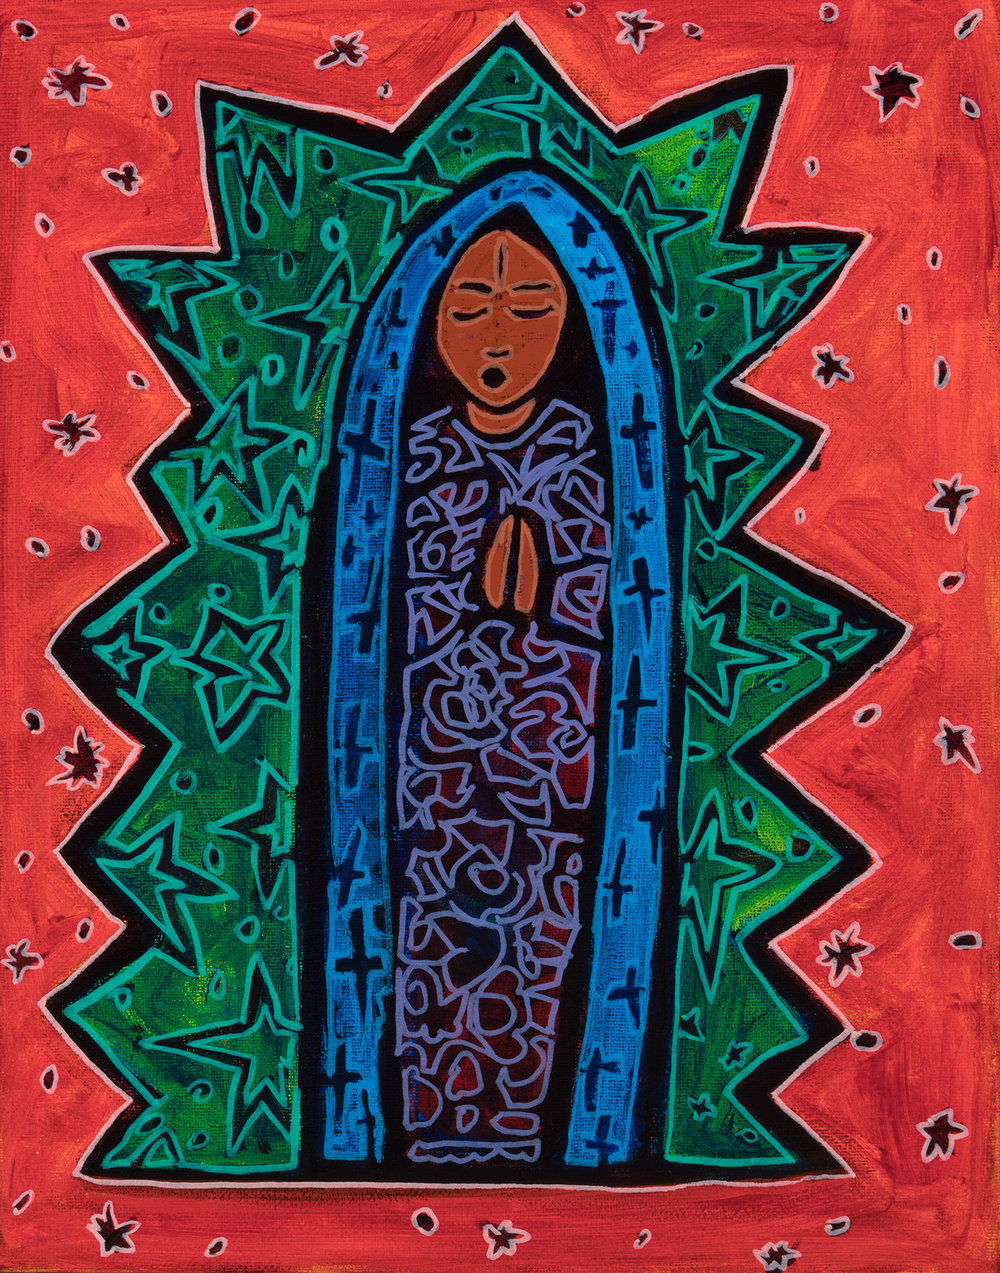 guadalupe, 2018, 11x14